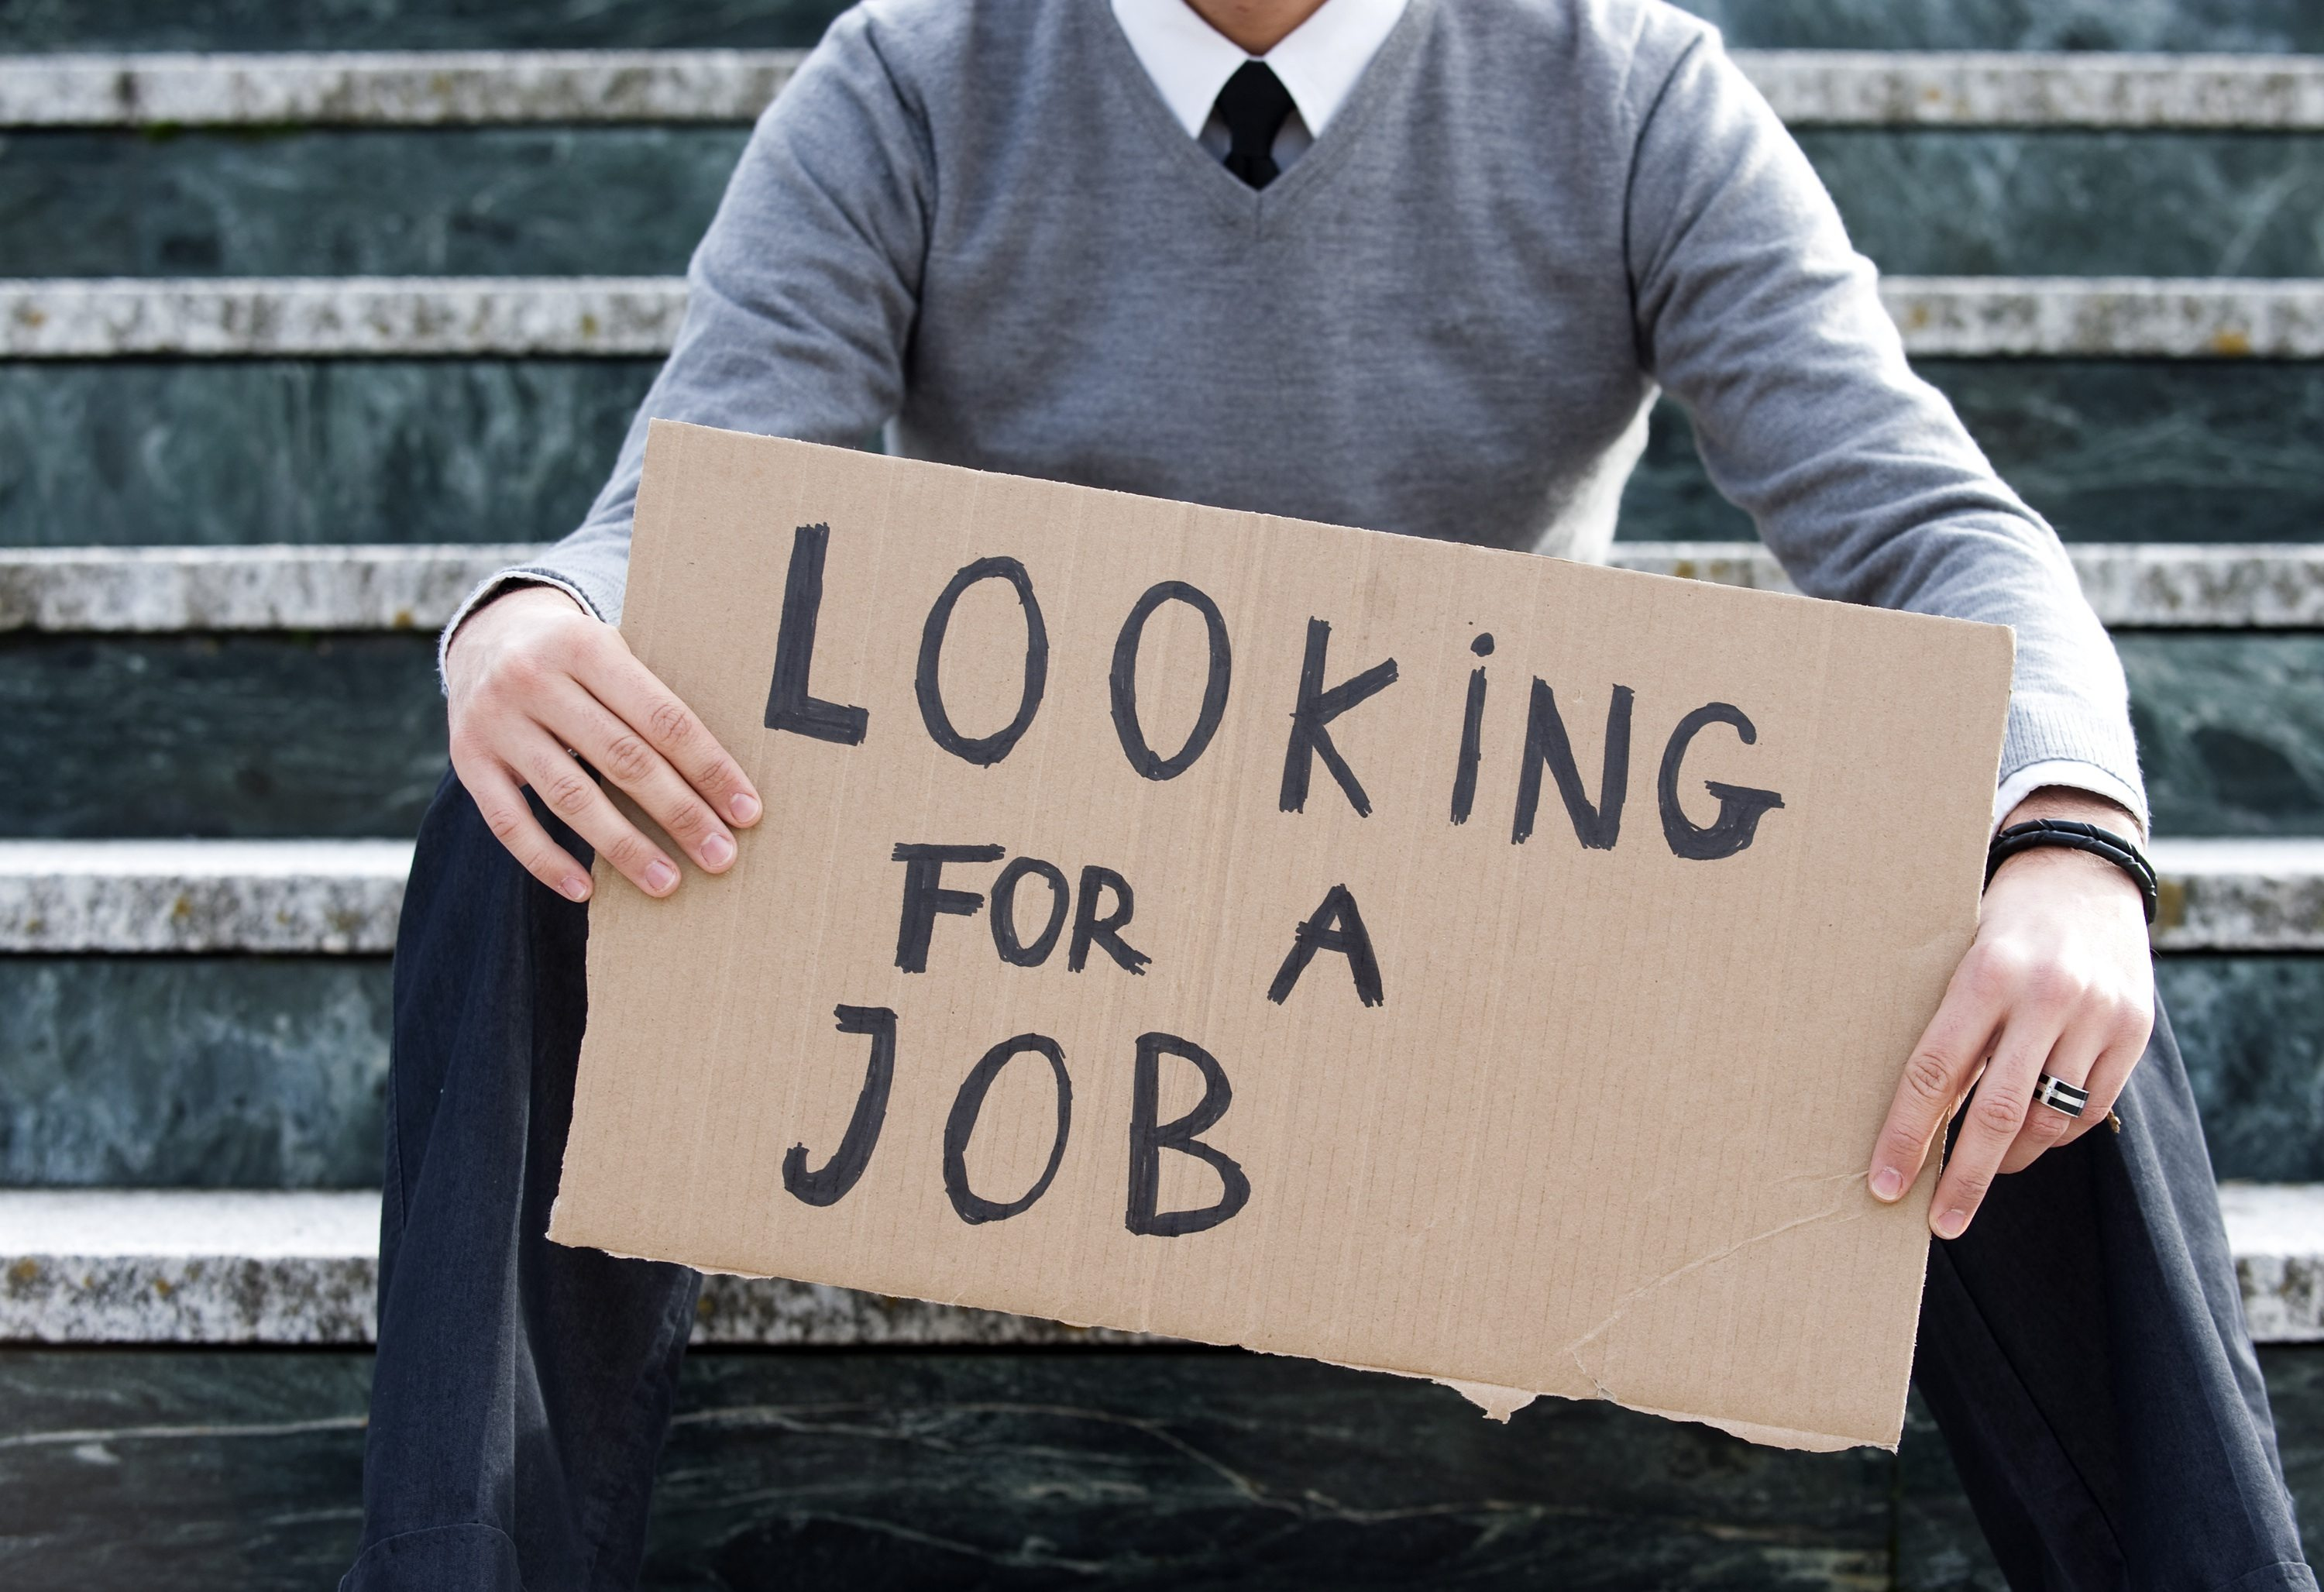 reasons for unemployment in developing countries